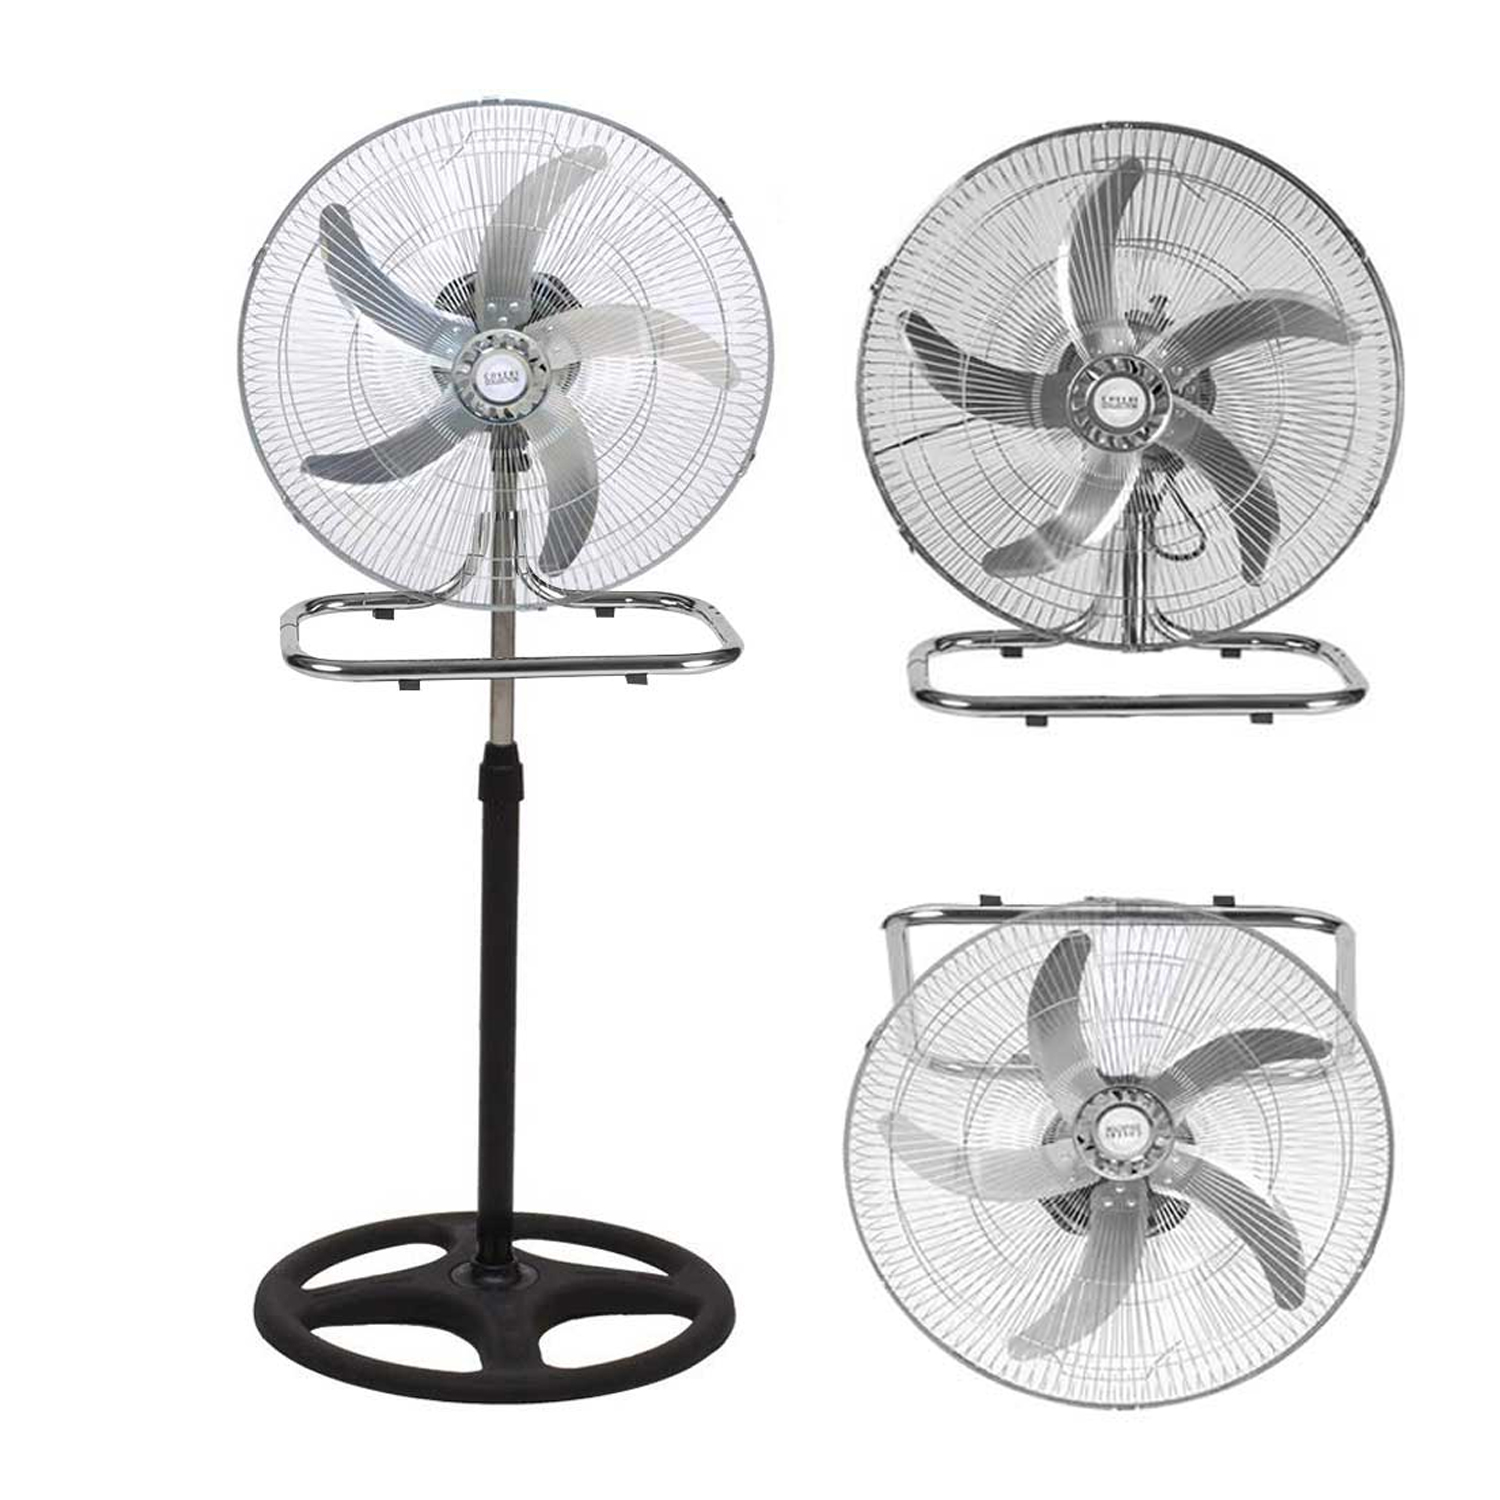 Coveri Collection Ventilatore In Acciaio 3 In 1 Con Pale In Alluminio